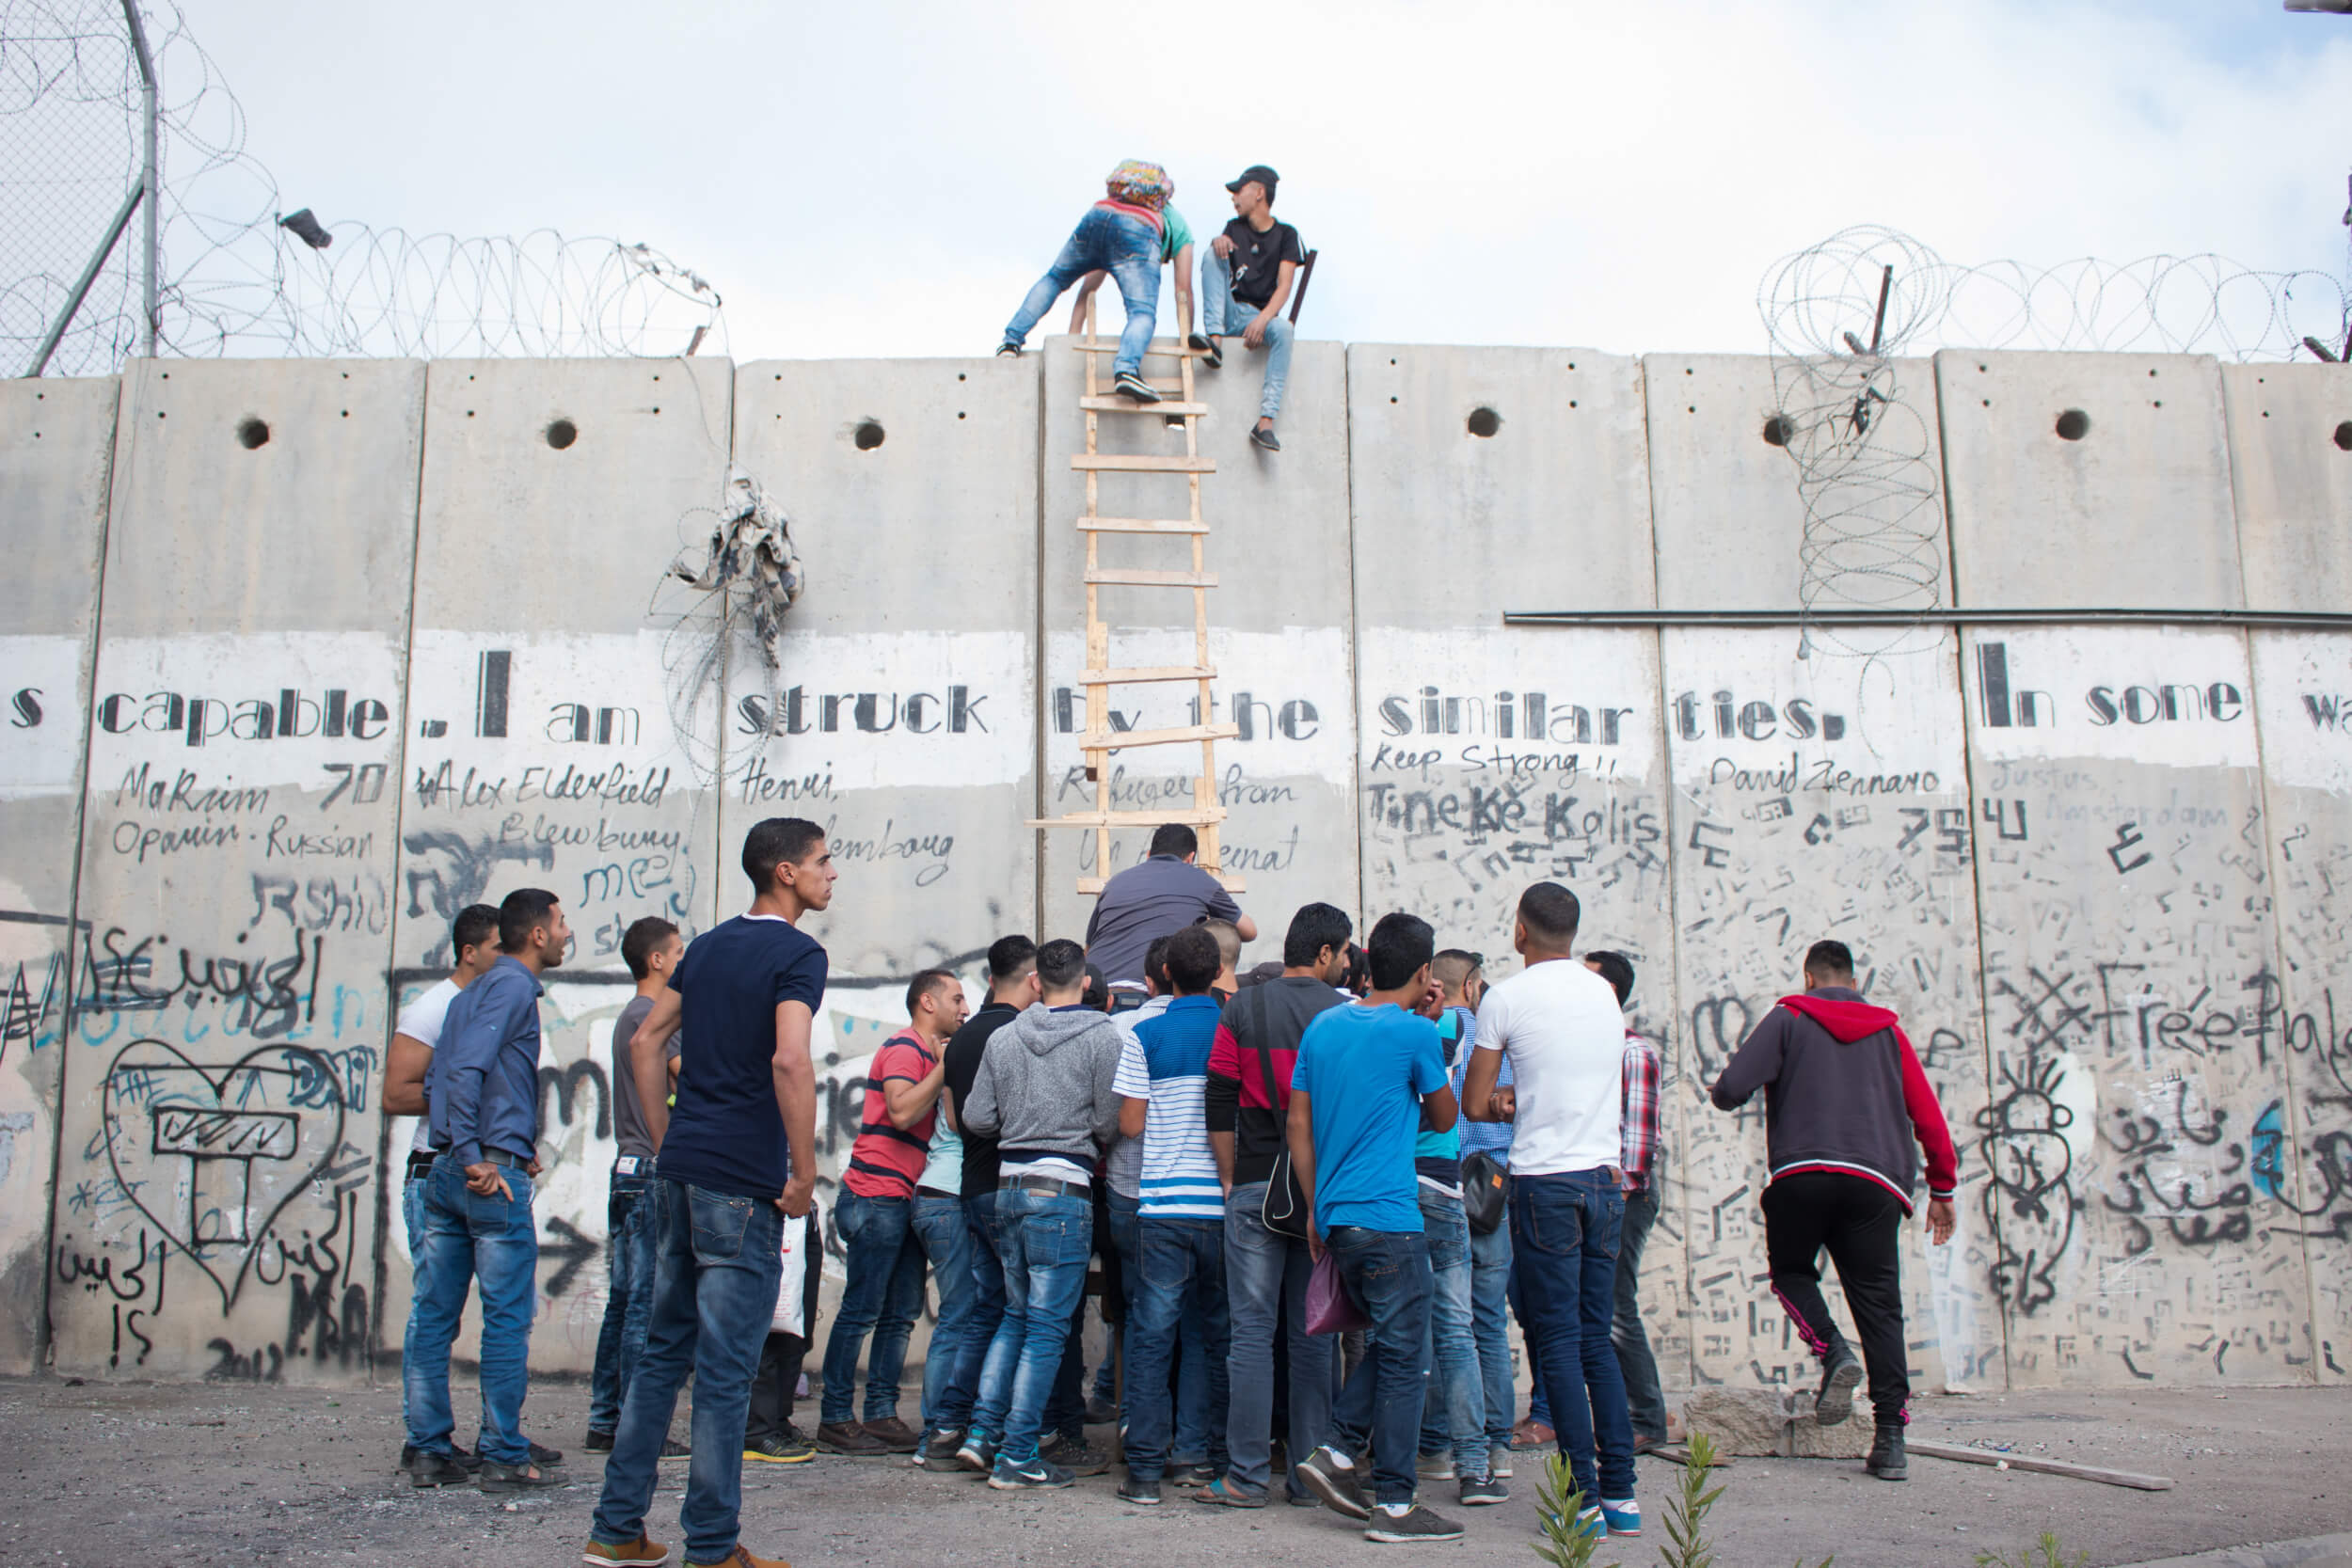 Palestinians gather at a point along the separation wall in Al Ram to illegally cross into Jerusalem with the help of smugglers.  A knotted rope allows them to descend on the other side. (Photo: Karam Saleem)